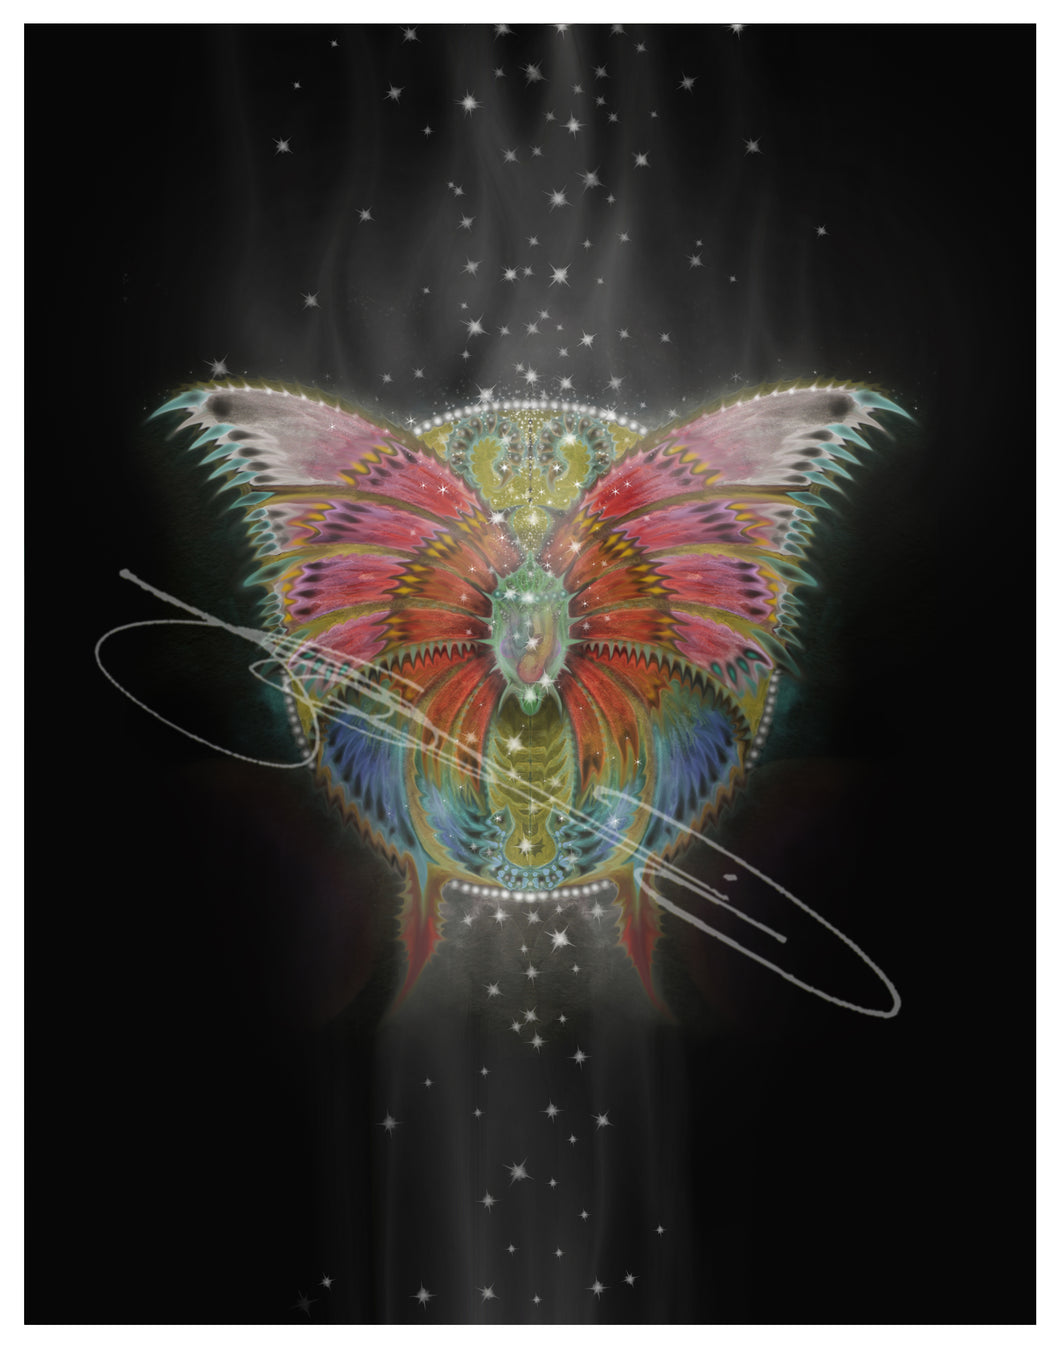 'The Chrysalis' - Art from The Chrysalis , Art Prints/ Shipping Included